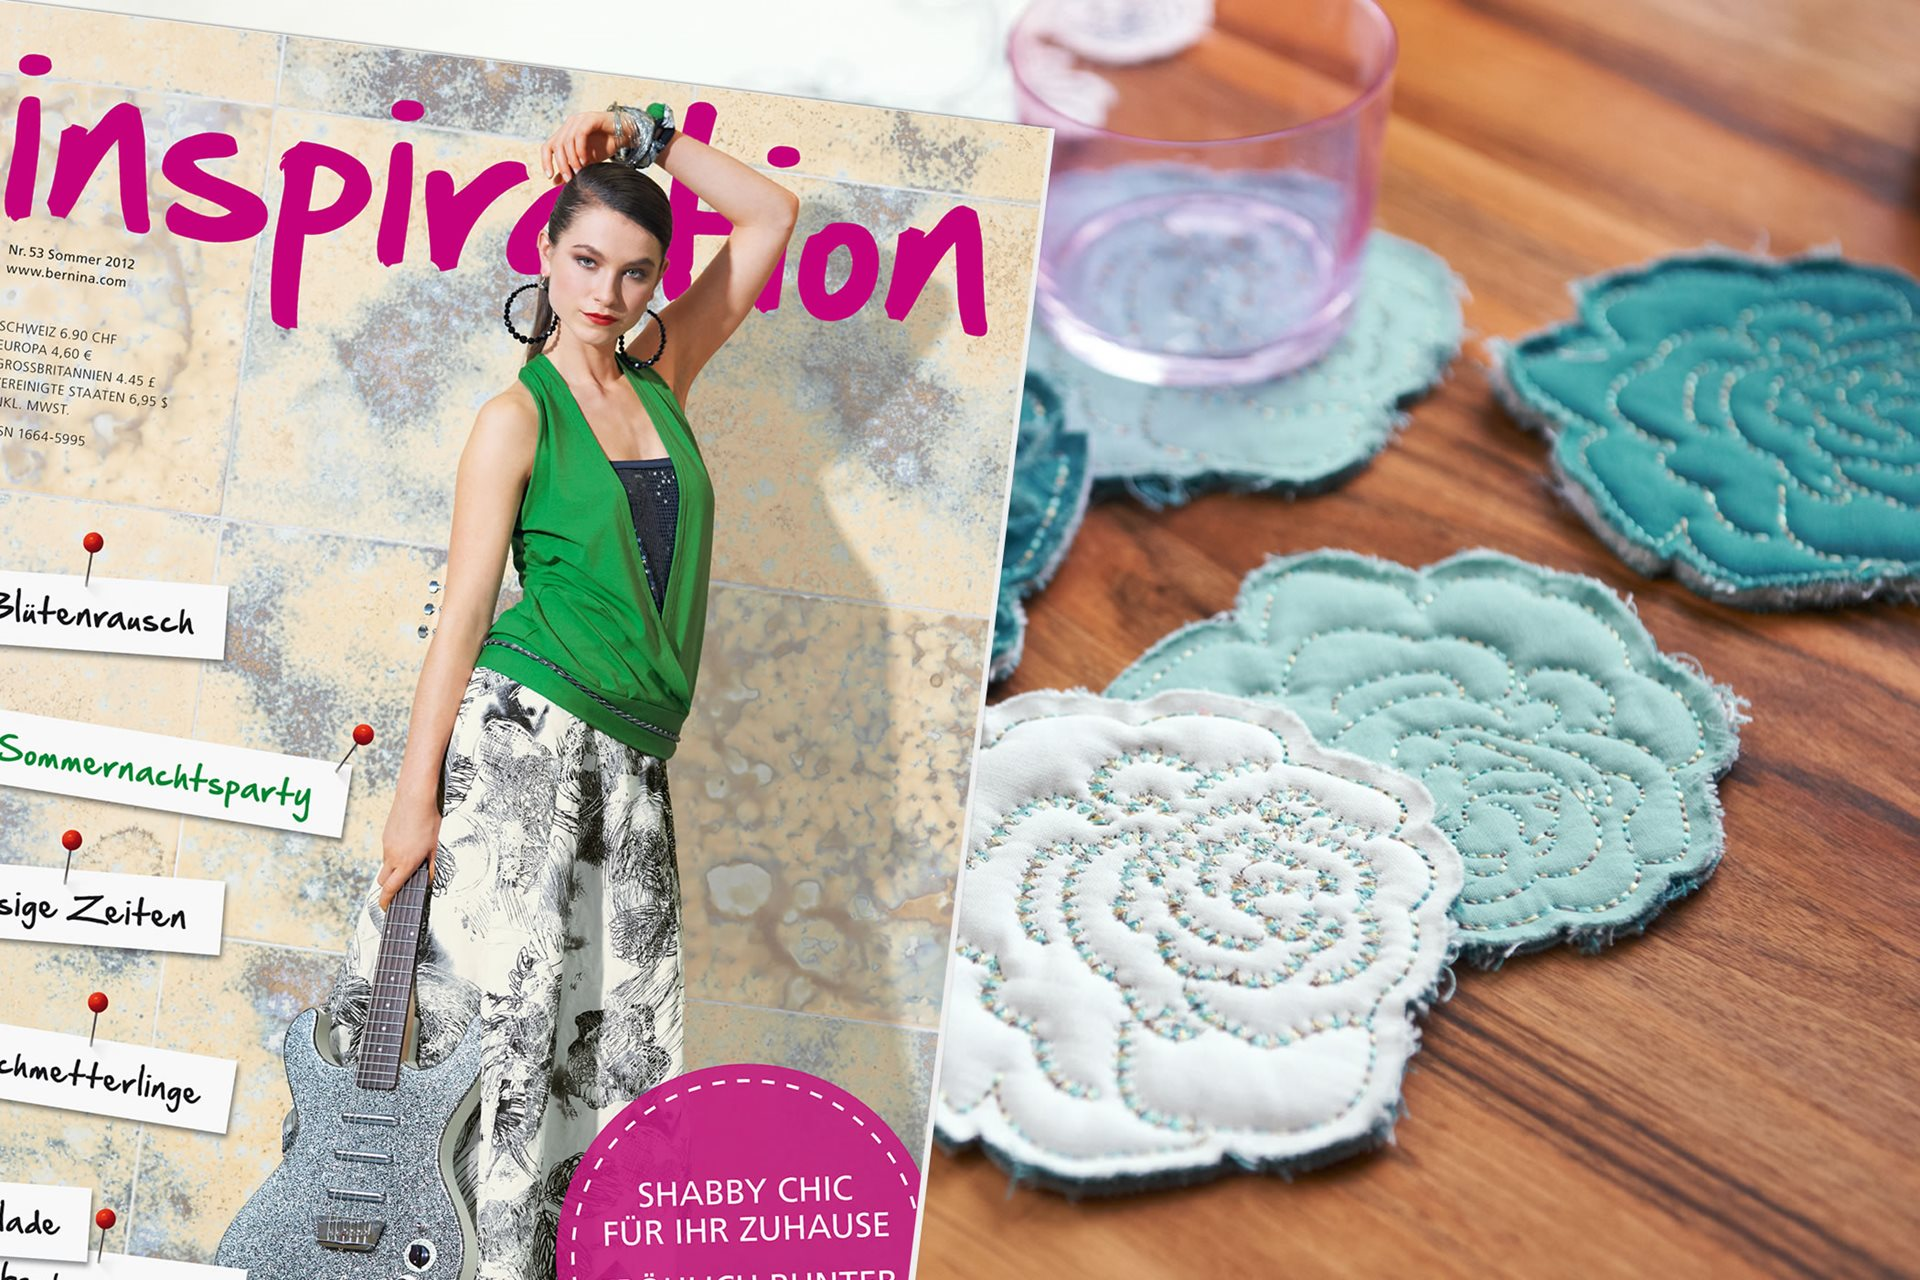 Inspiration Issue 53